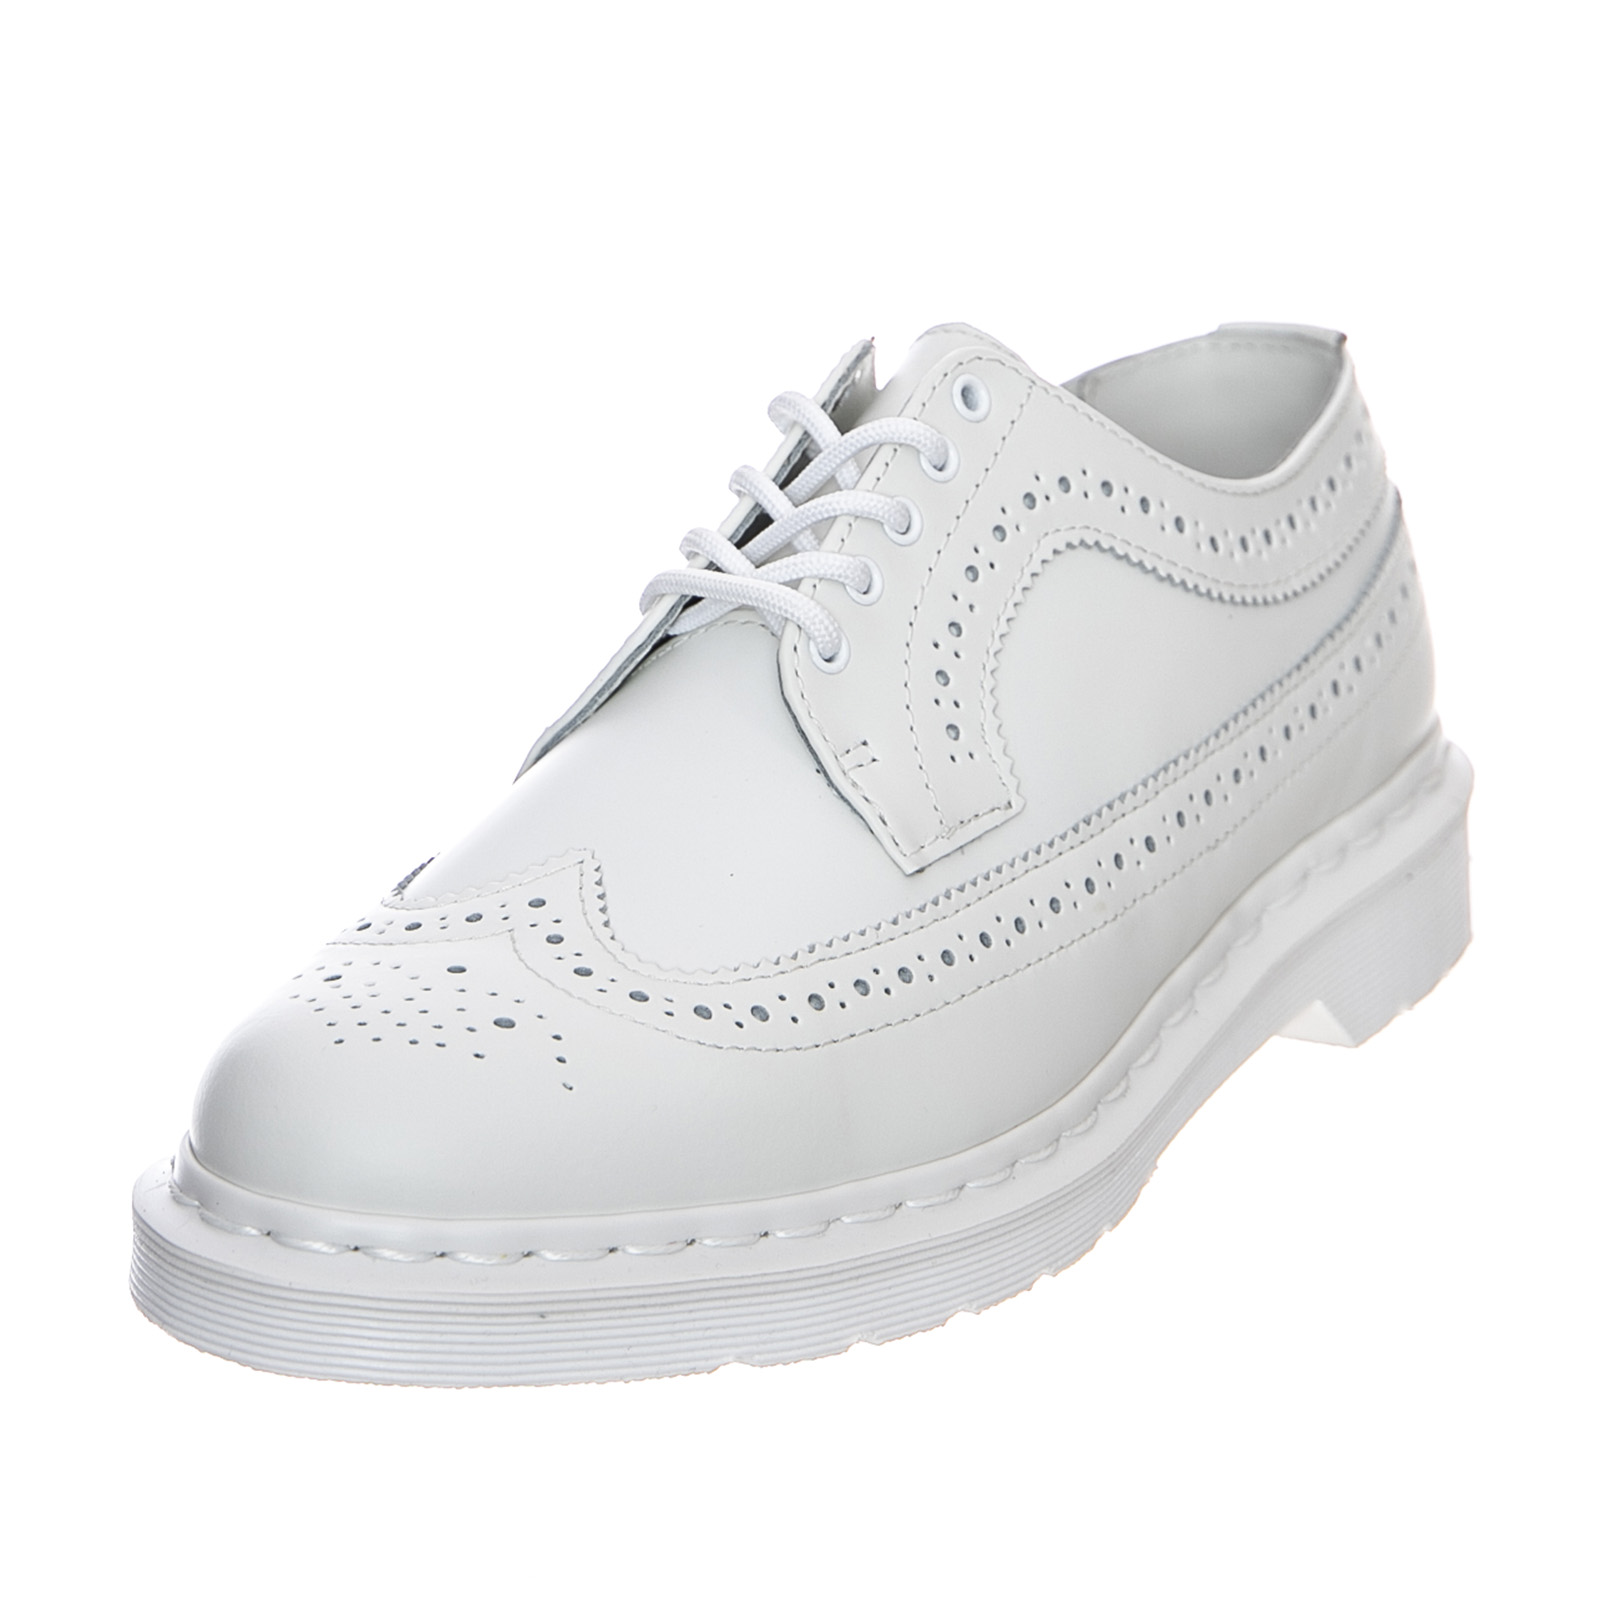 usa cheap sale best place for hot sale online Details about Dr.Martens 3989 Mono Smooth - White - Shoes Low Man/Woman  White